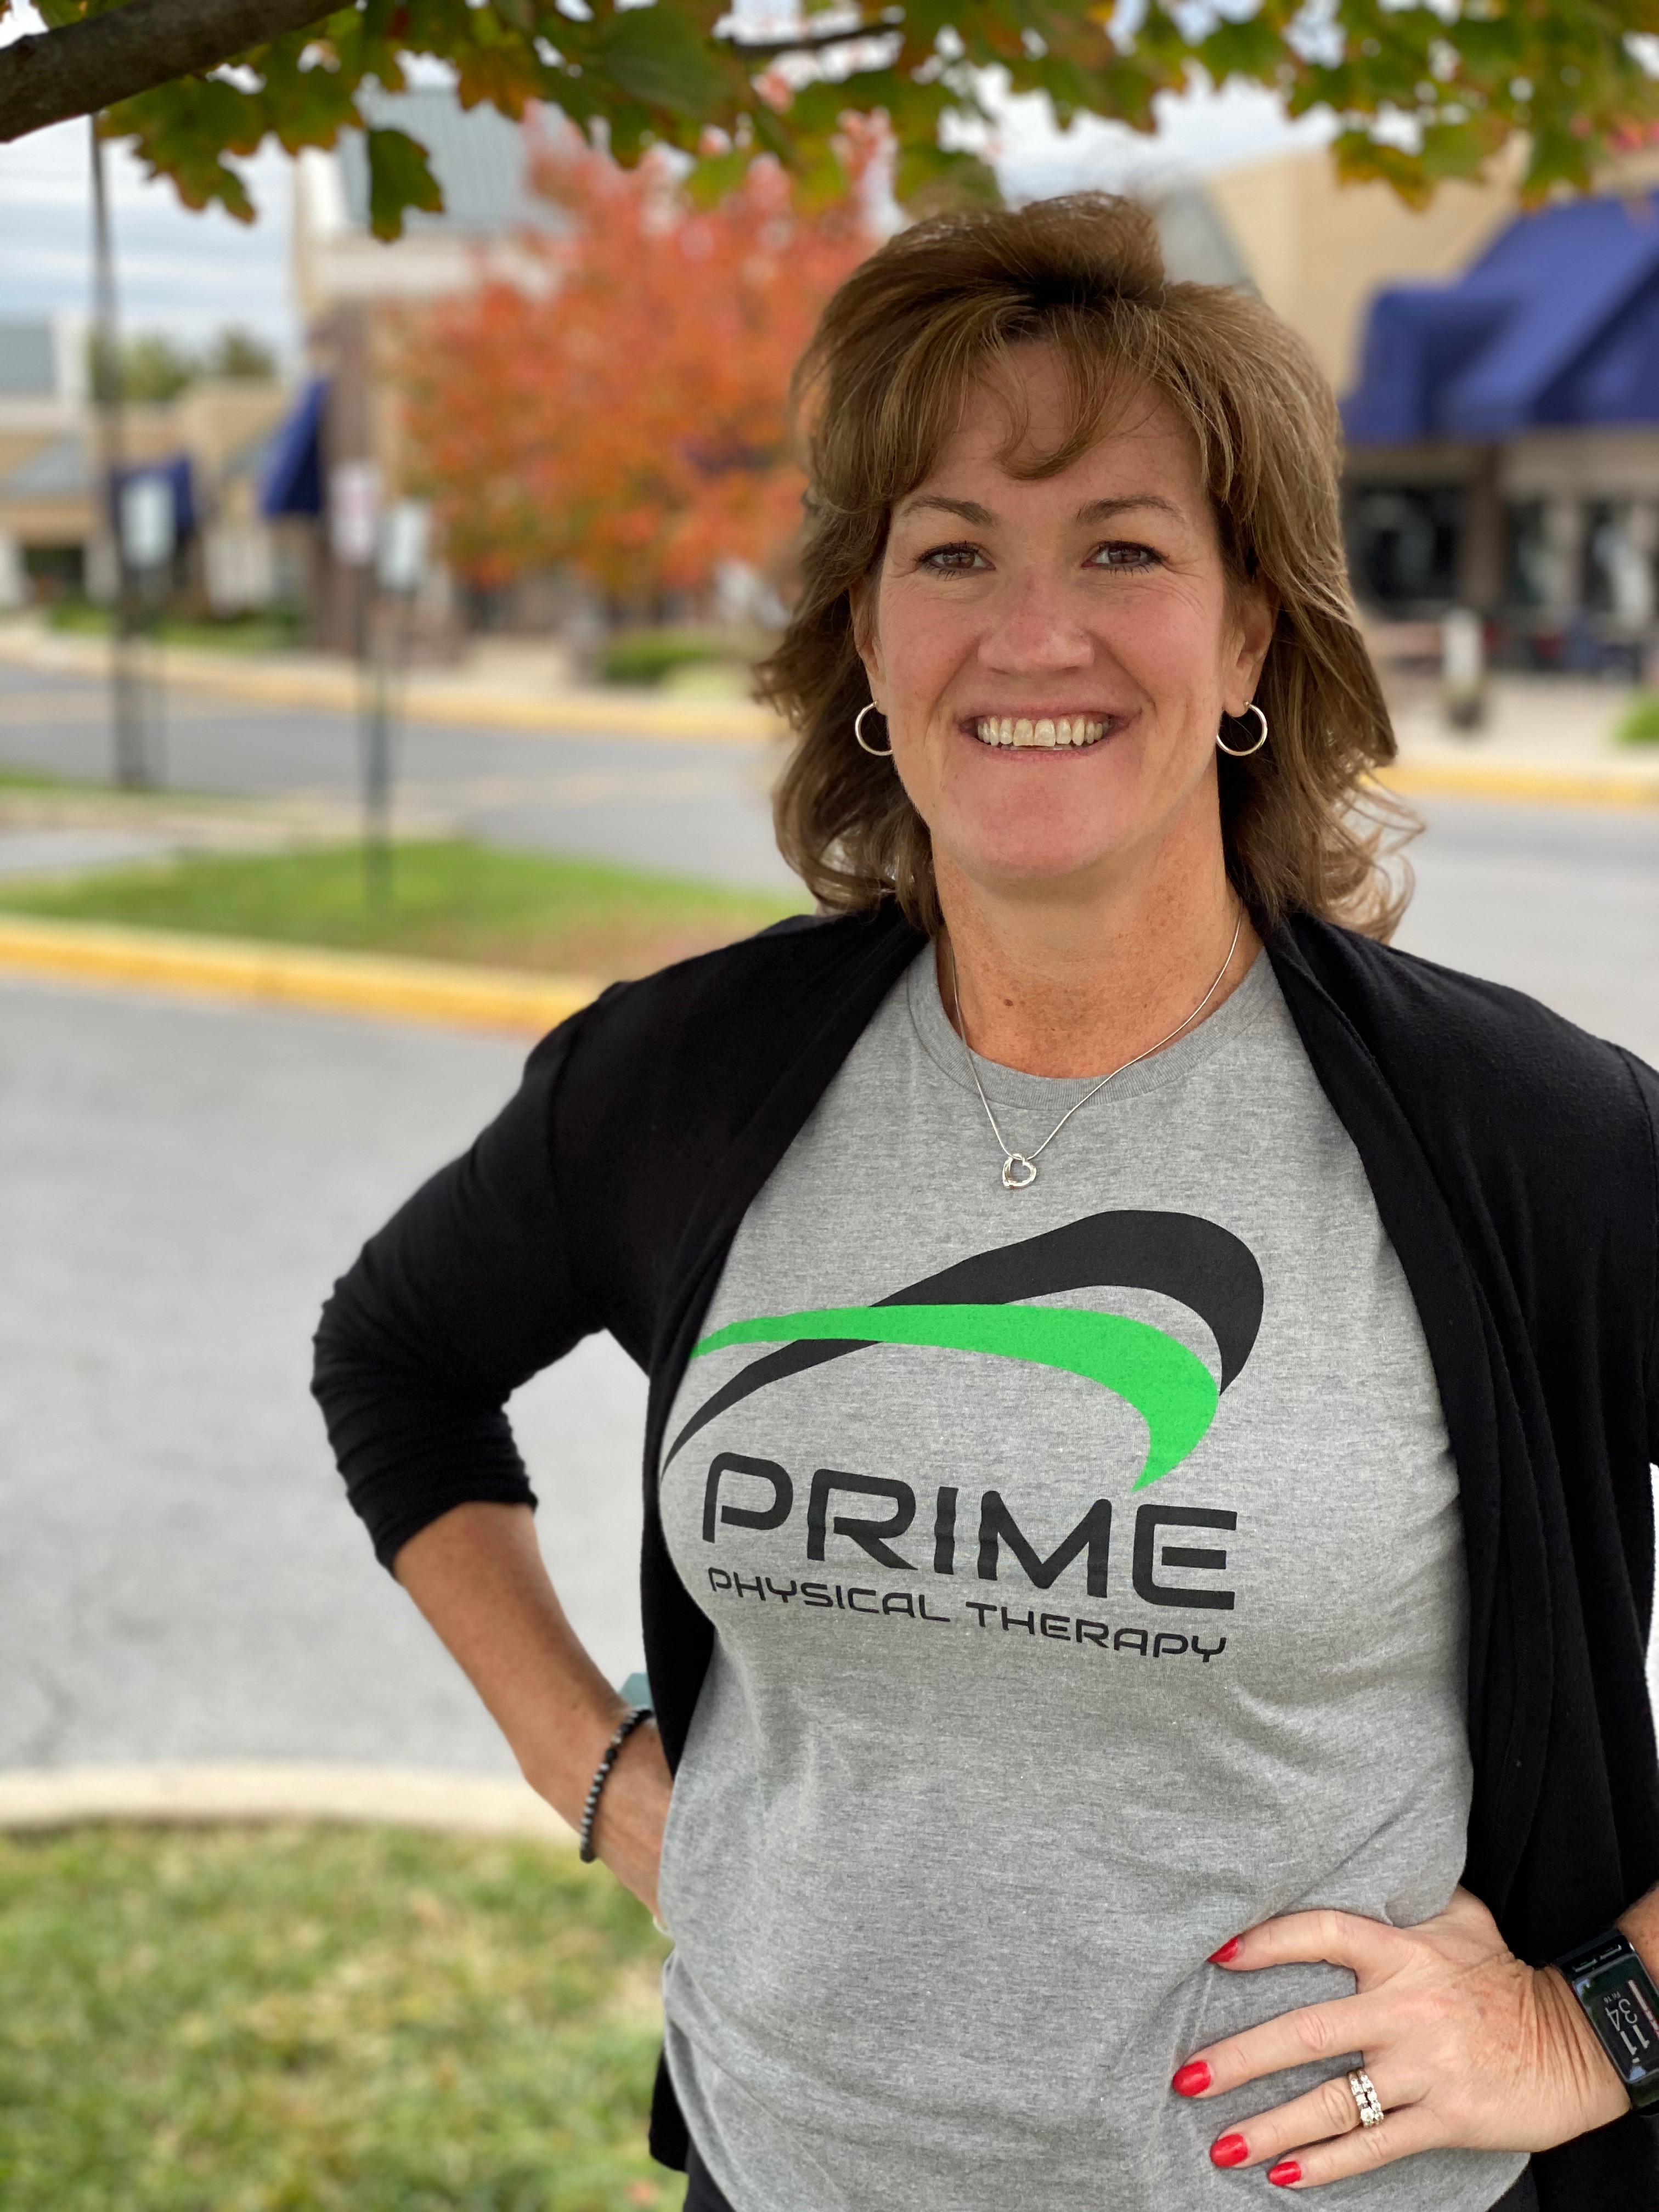 Krista Hillis biography photo, office manager at PRIME Physical Therapy